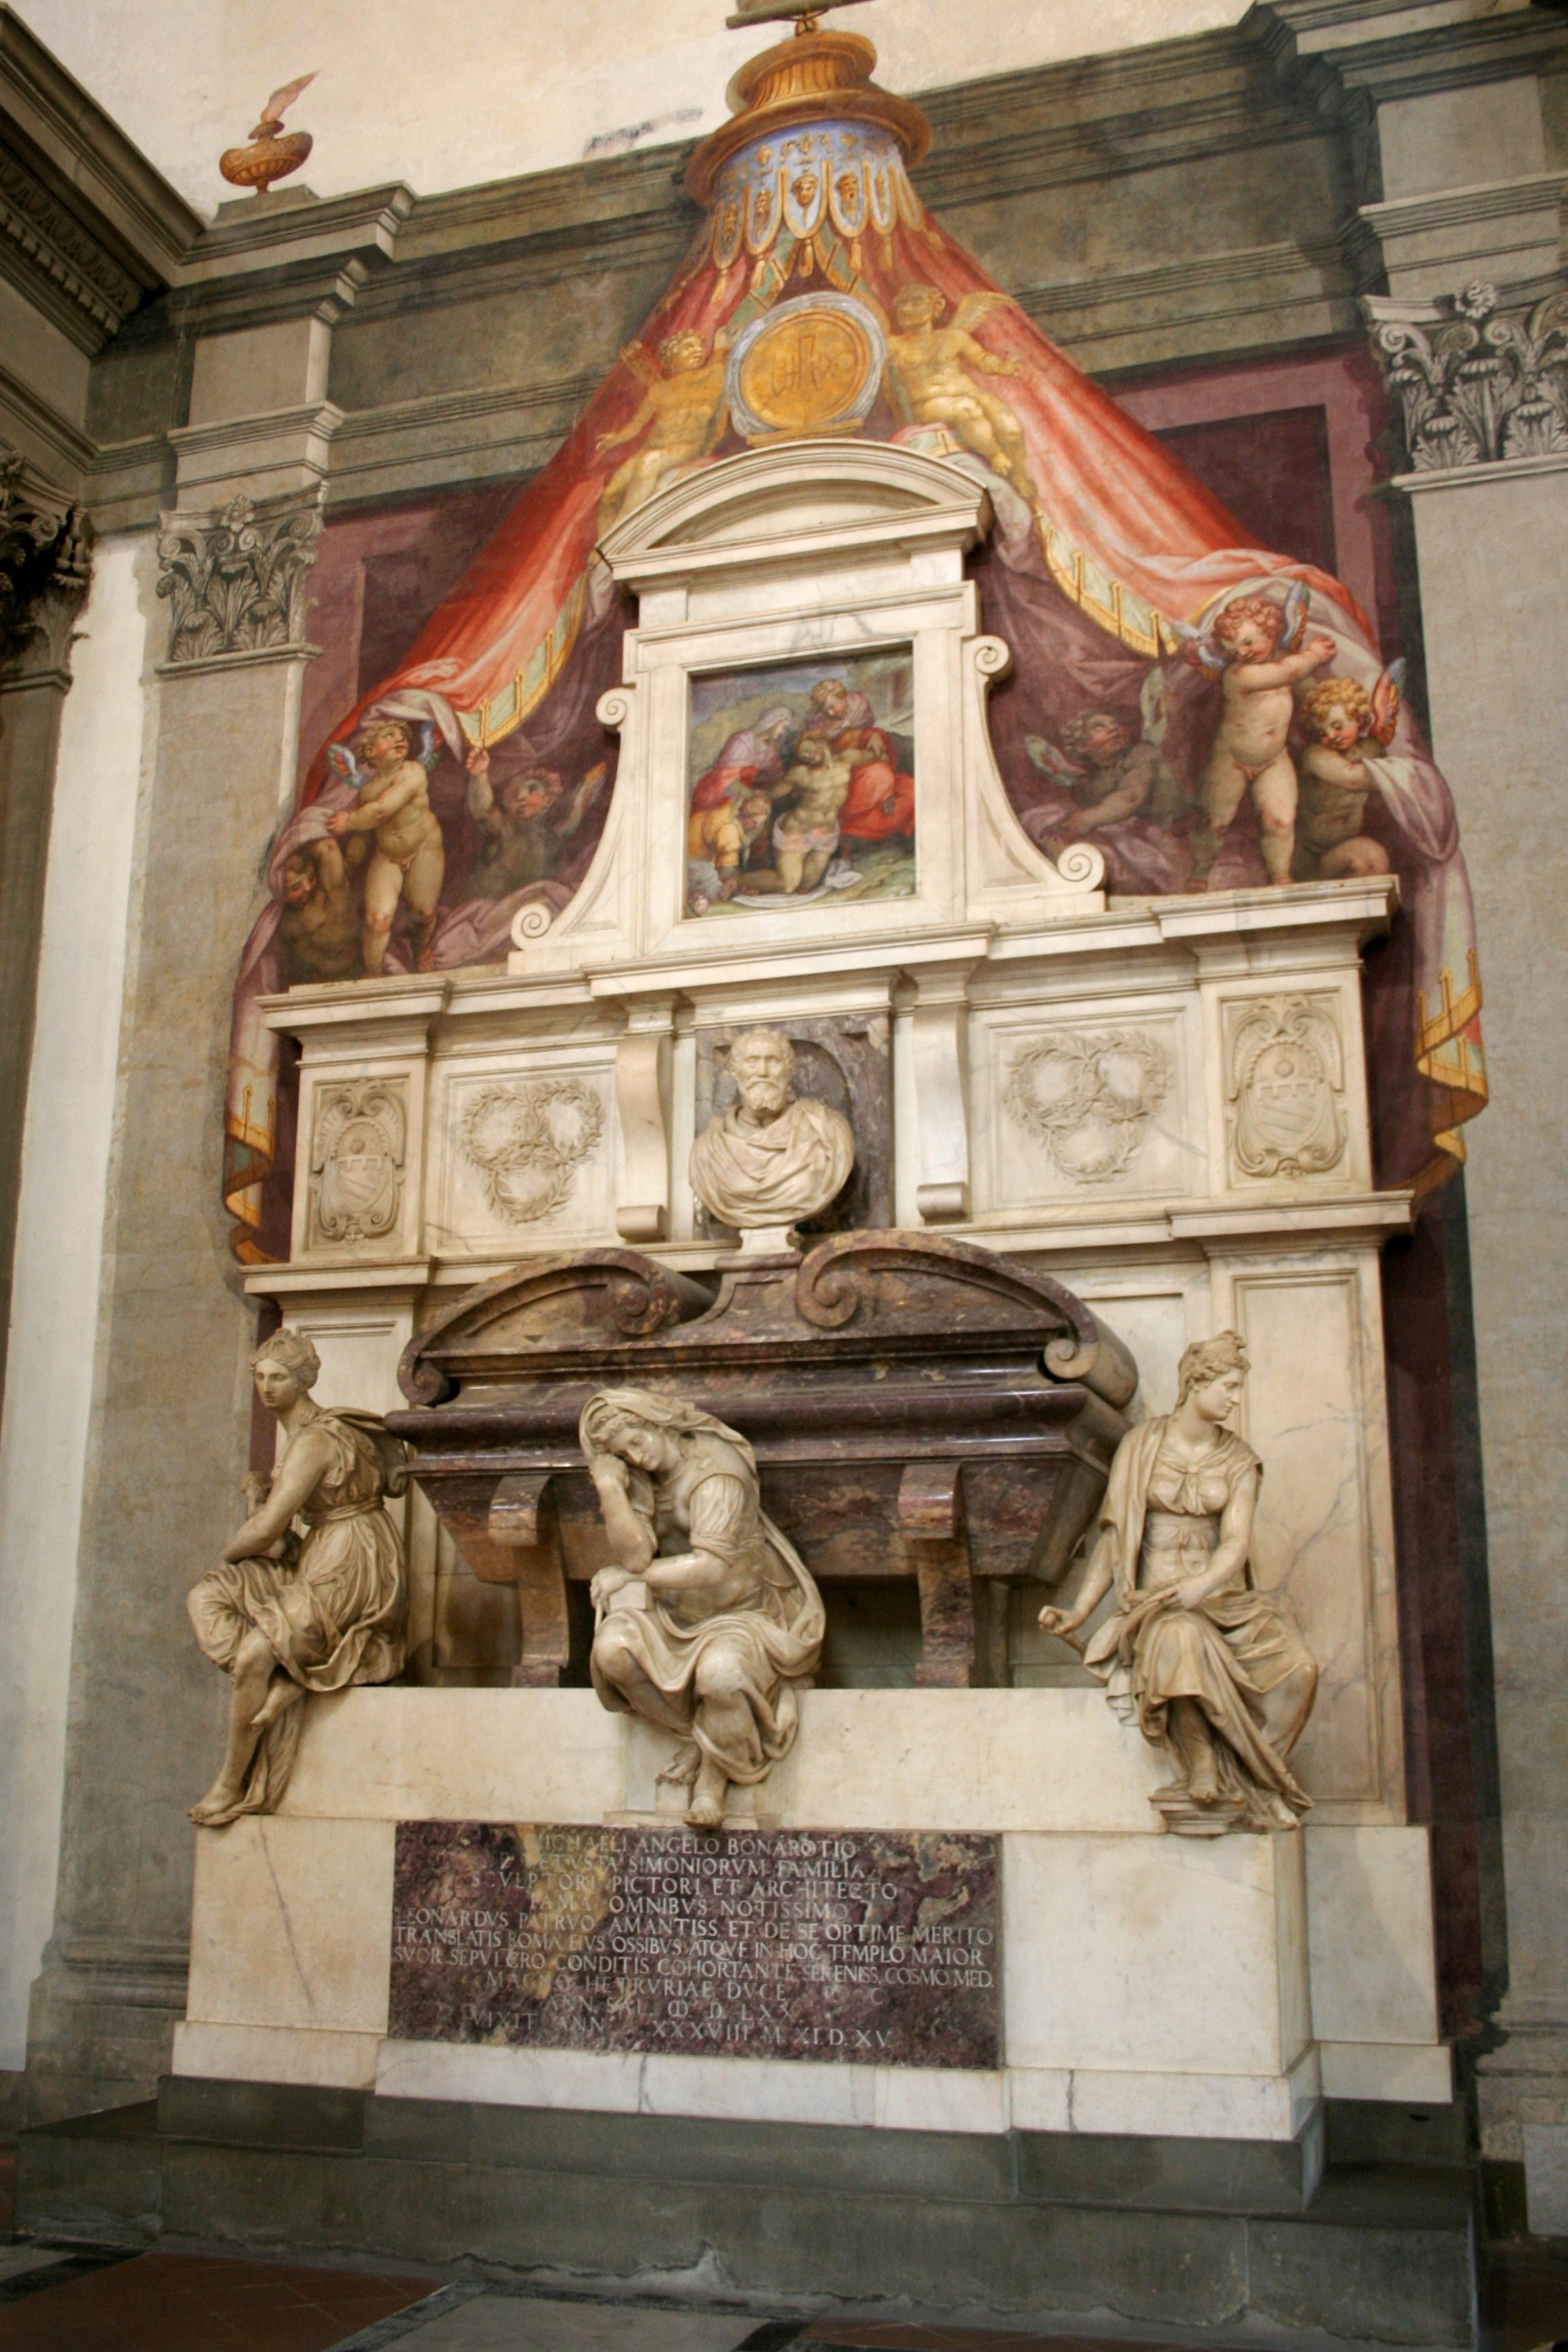 Michelangelo's Tomb in Santa Croce